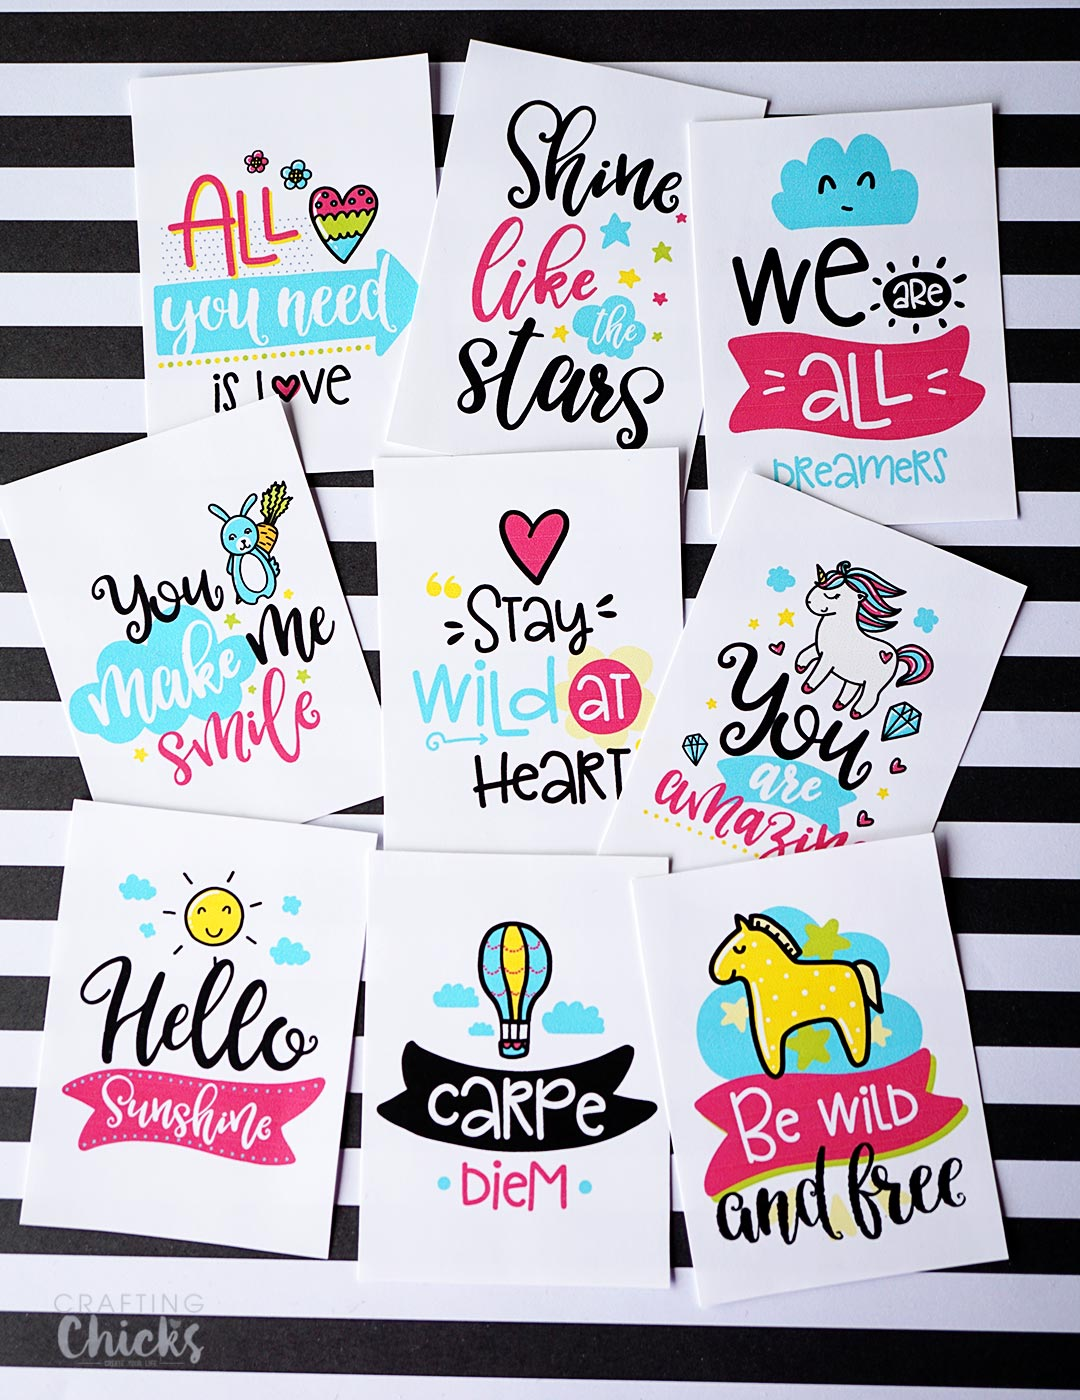 graphic regarding Random Acts of Kindness Cards Printable identify Random Functions Printable Kindness Playing cards - The Composing Chicks